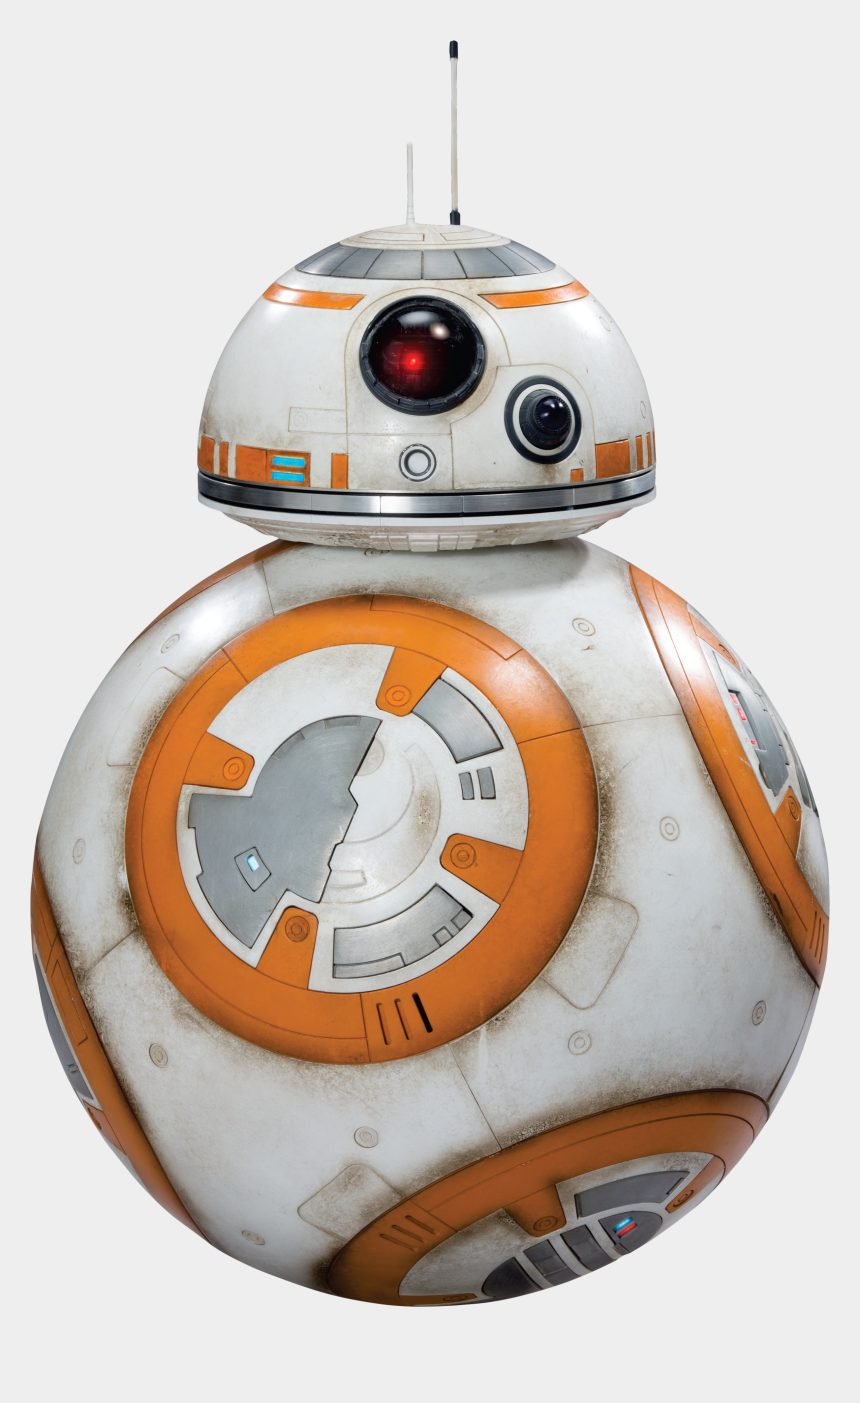 bb-8 clipart, Cartoons - Latest Bb8, Episode Vii, Vintage Style Outfits, Star - Star Wars Bb8